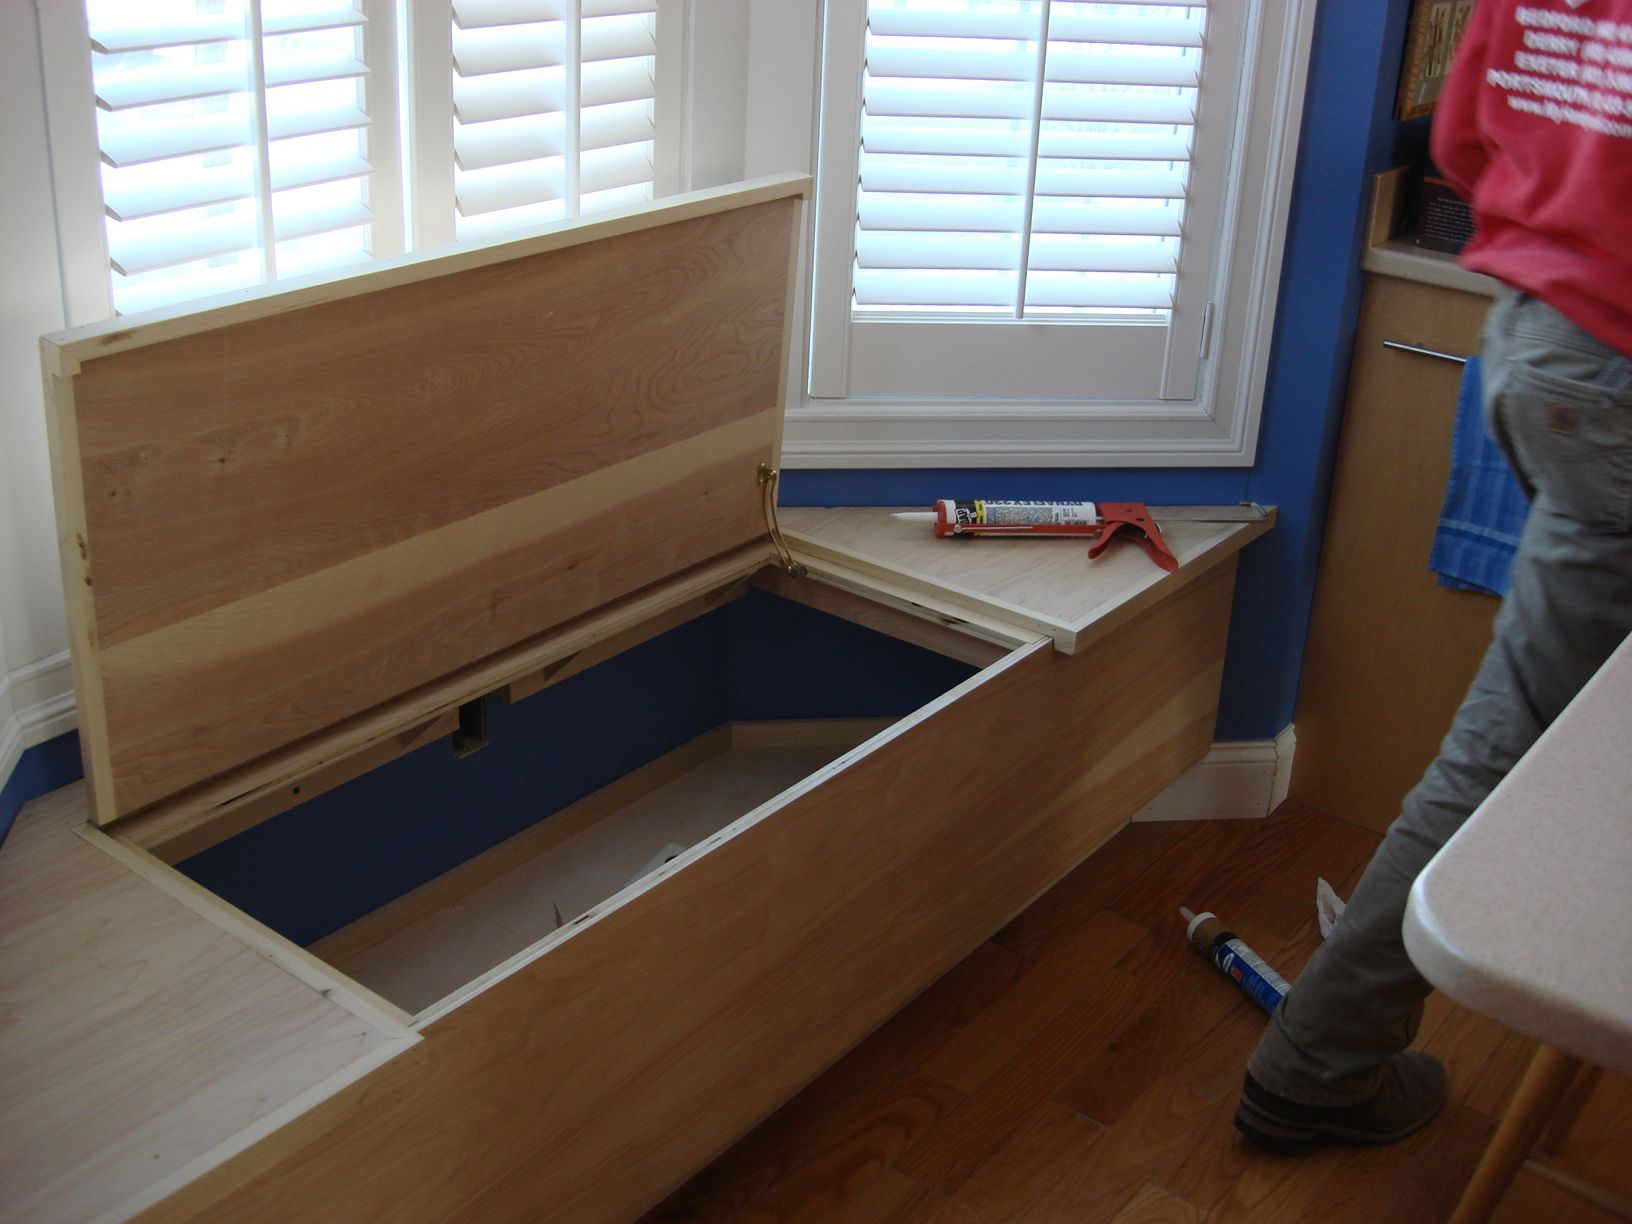 Bay window seat with storage - Images About Window Seats On Pinterest Hidden Storage With Bay Window Seating